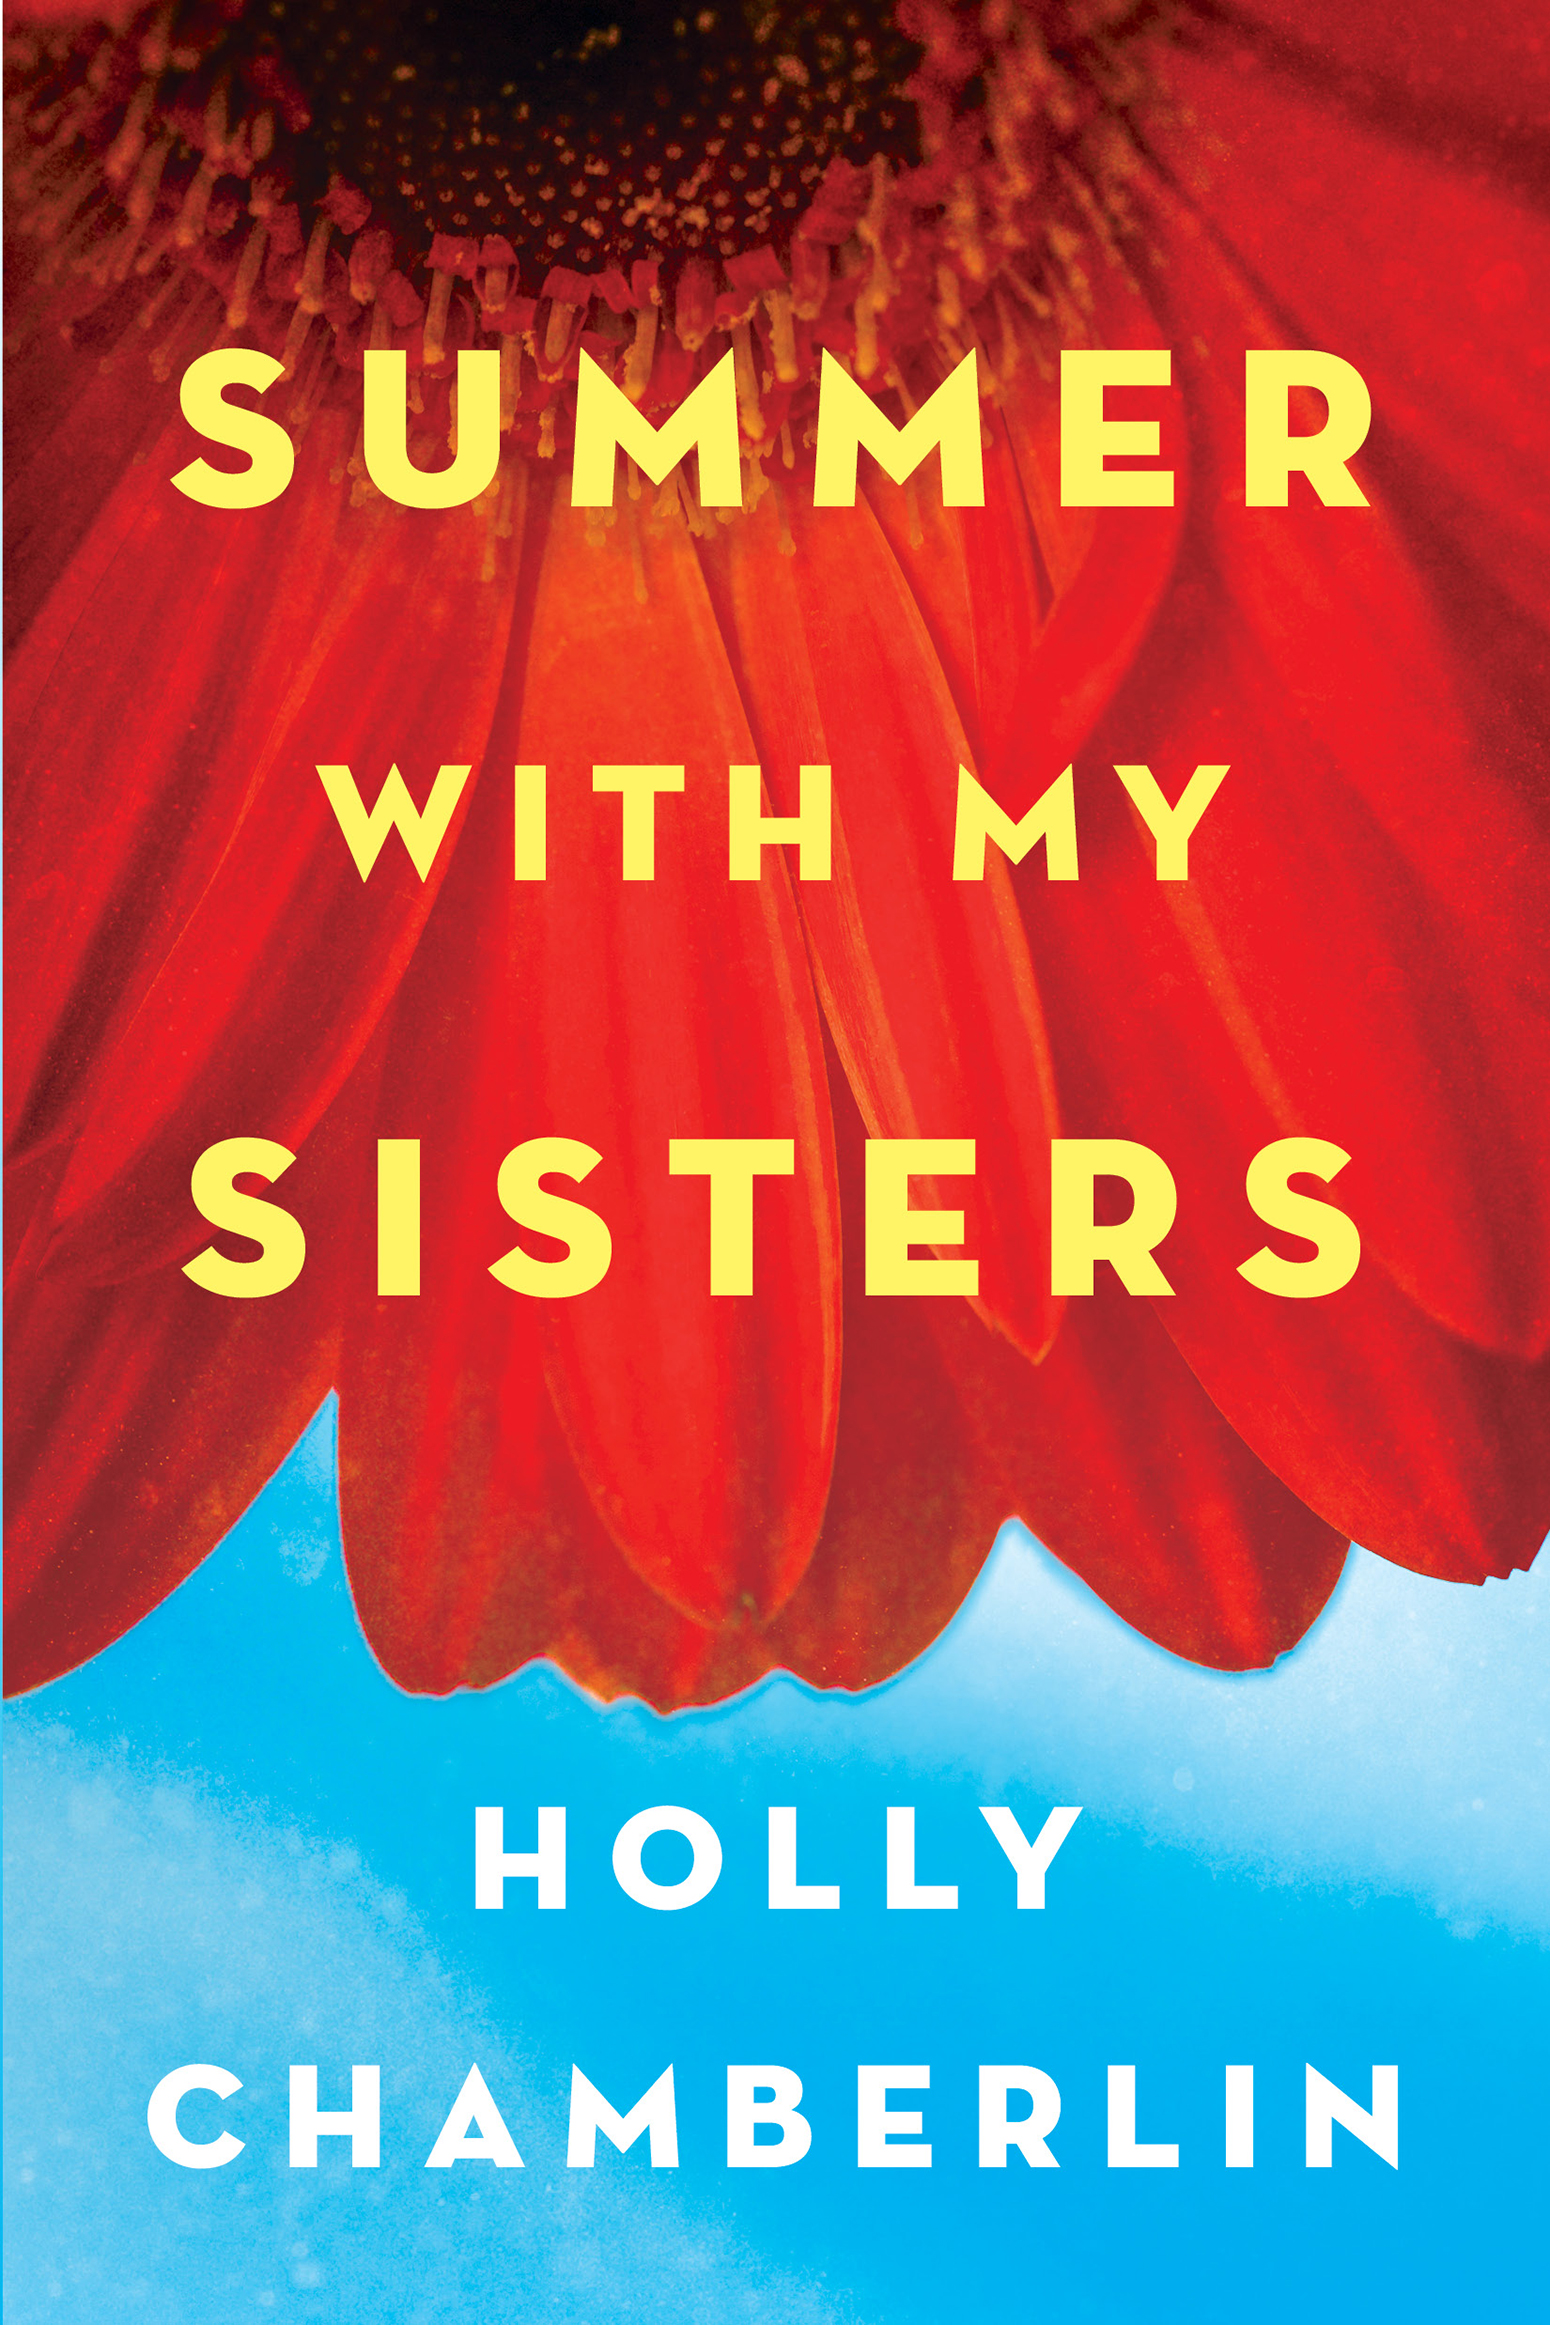 Summer with my sisters cover image